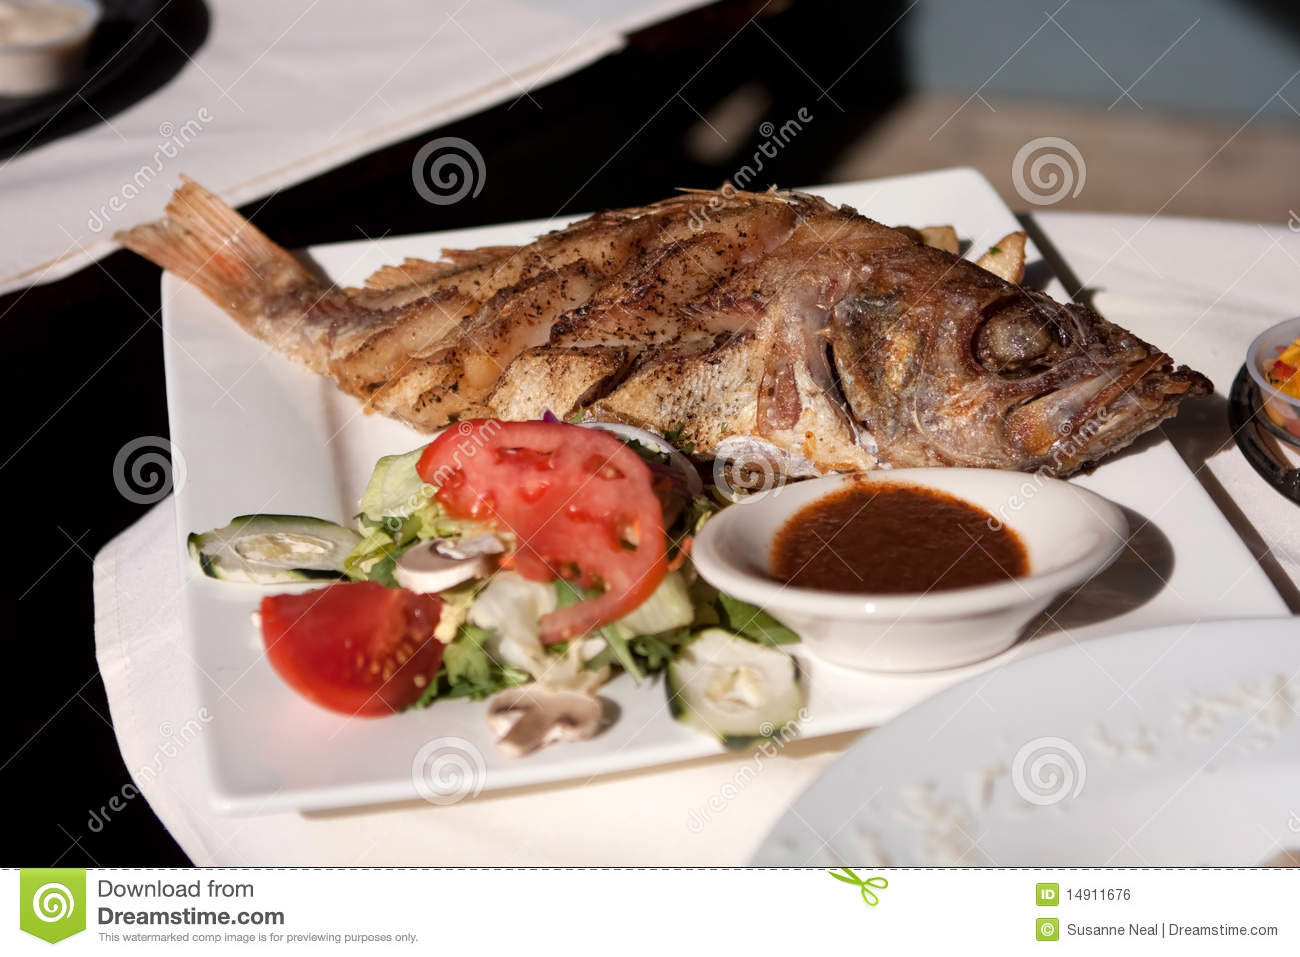 Whole cooked fish and salad